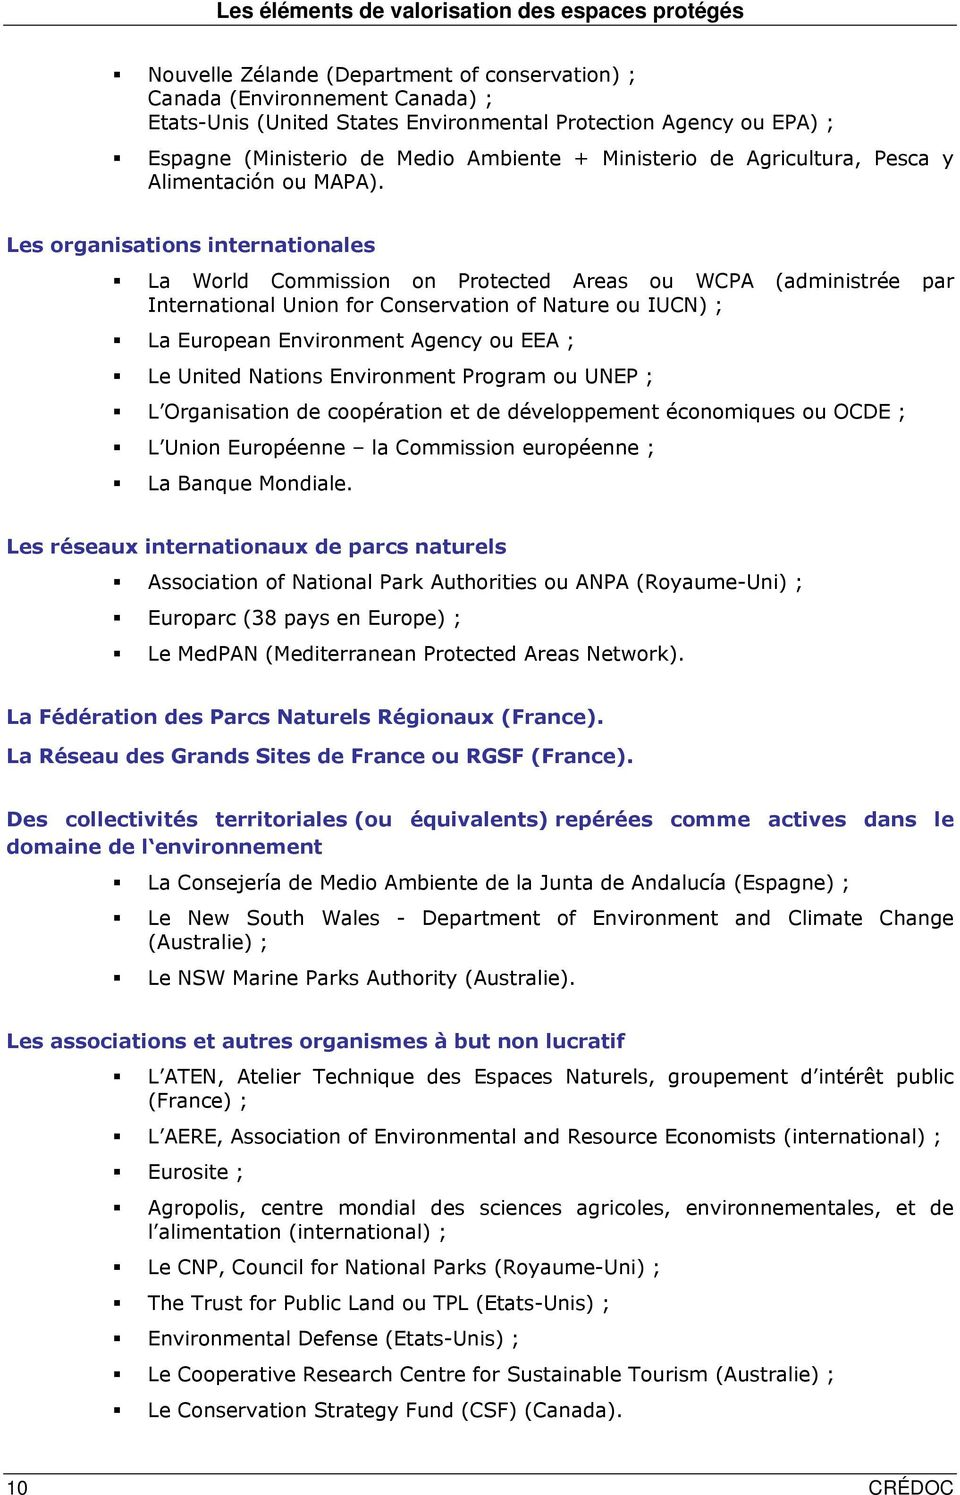 Les organisations internationales La World Commission on Protected Areas ou WCPA (administrée par International Union for Conservation of Nature ou IUCN) ; La European Environment Agency ou EEA ; Le